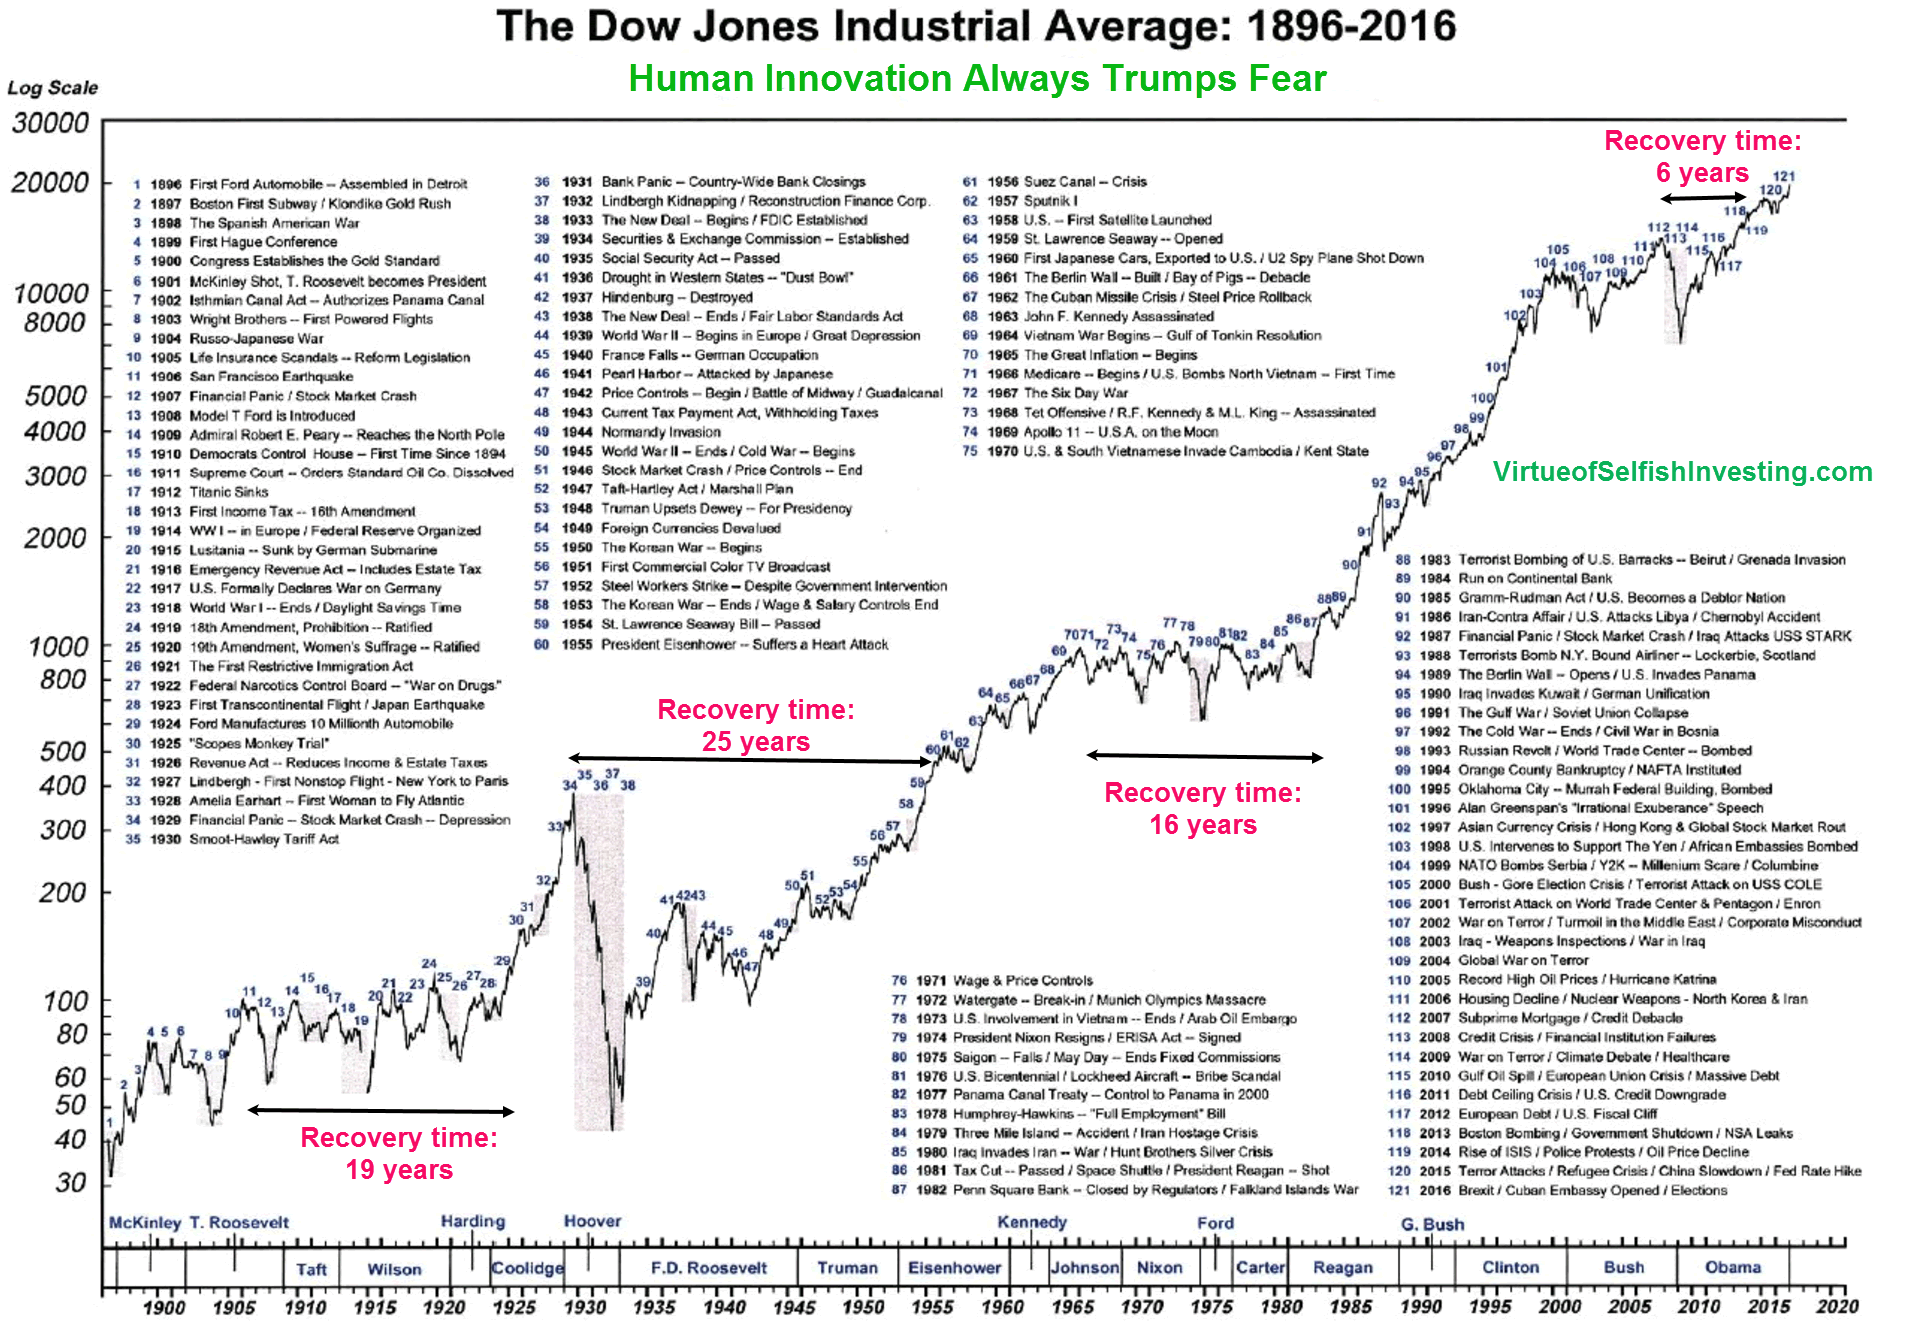 How Dow S Peaks And Troughs Have Reflected The U S Economy S Triumphs And Tribulations Over The Years And By Extens Dow Jones Industrial Average Dow Jones Dow